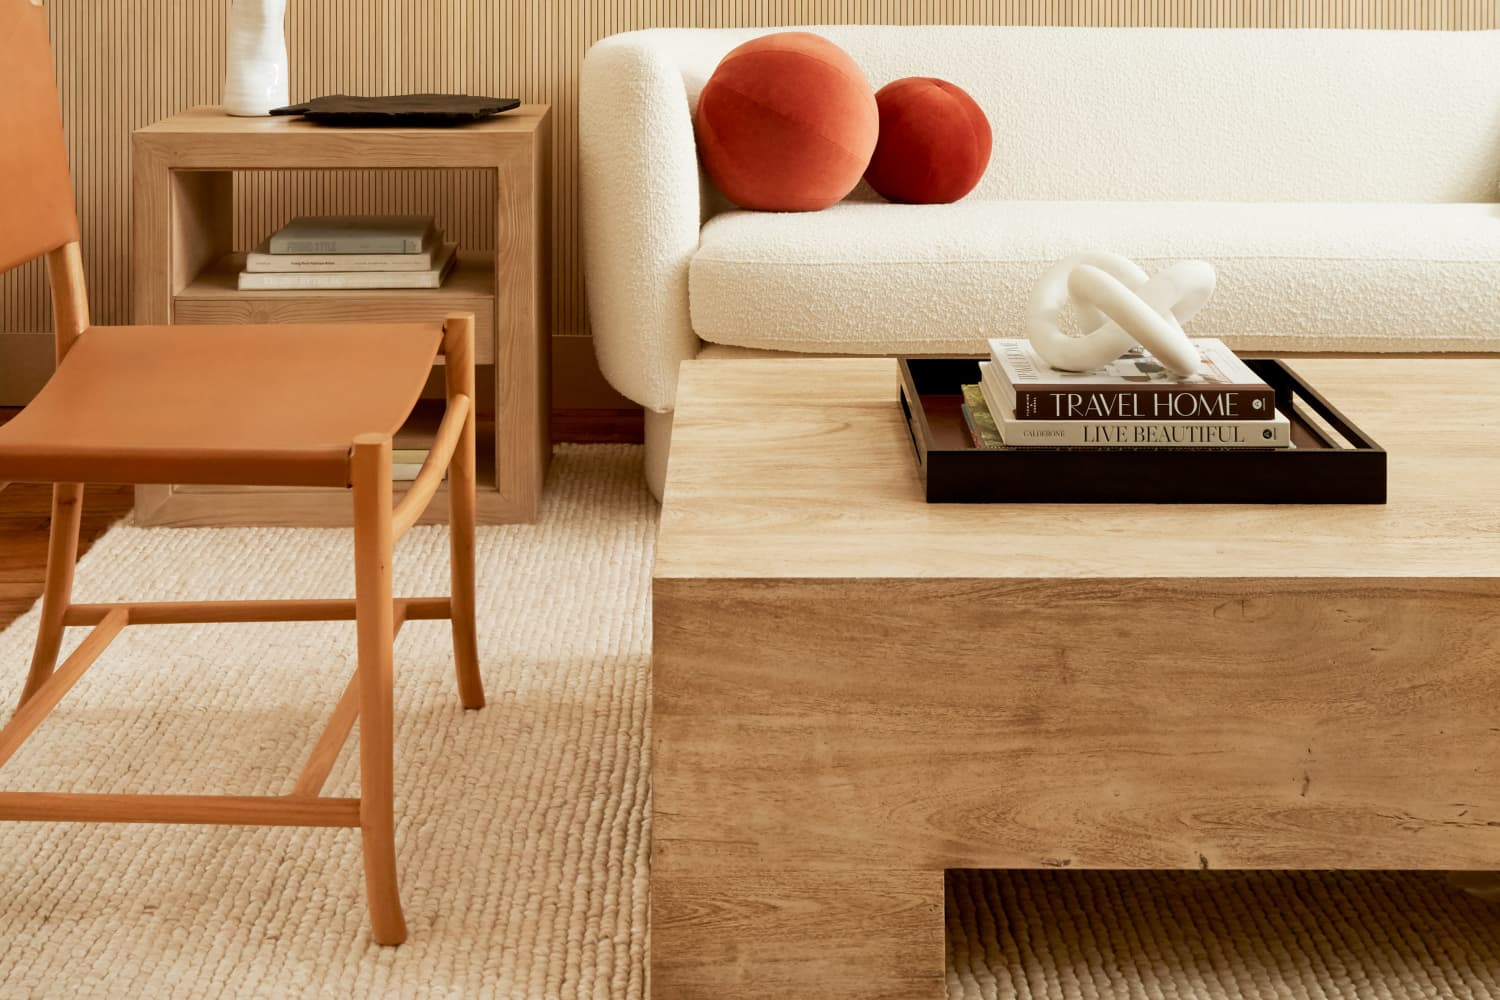 The Very First Thing You Should Do When Designing a Calming, Tranquil Room in Your Home